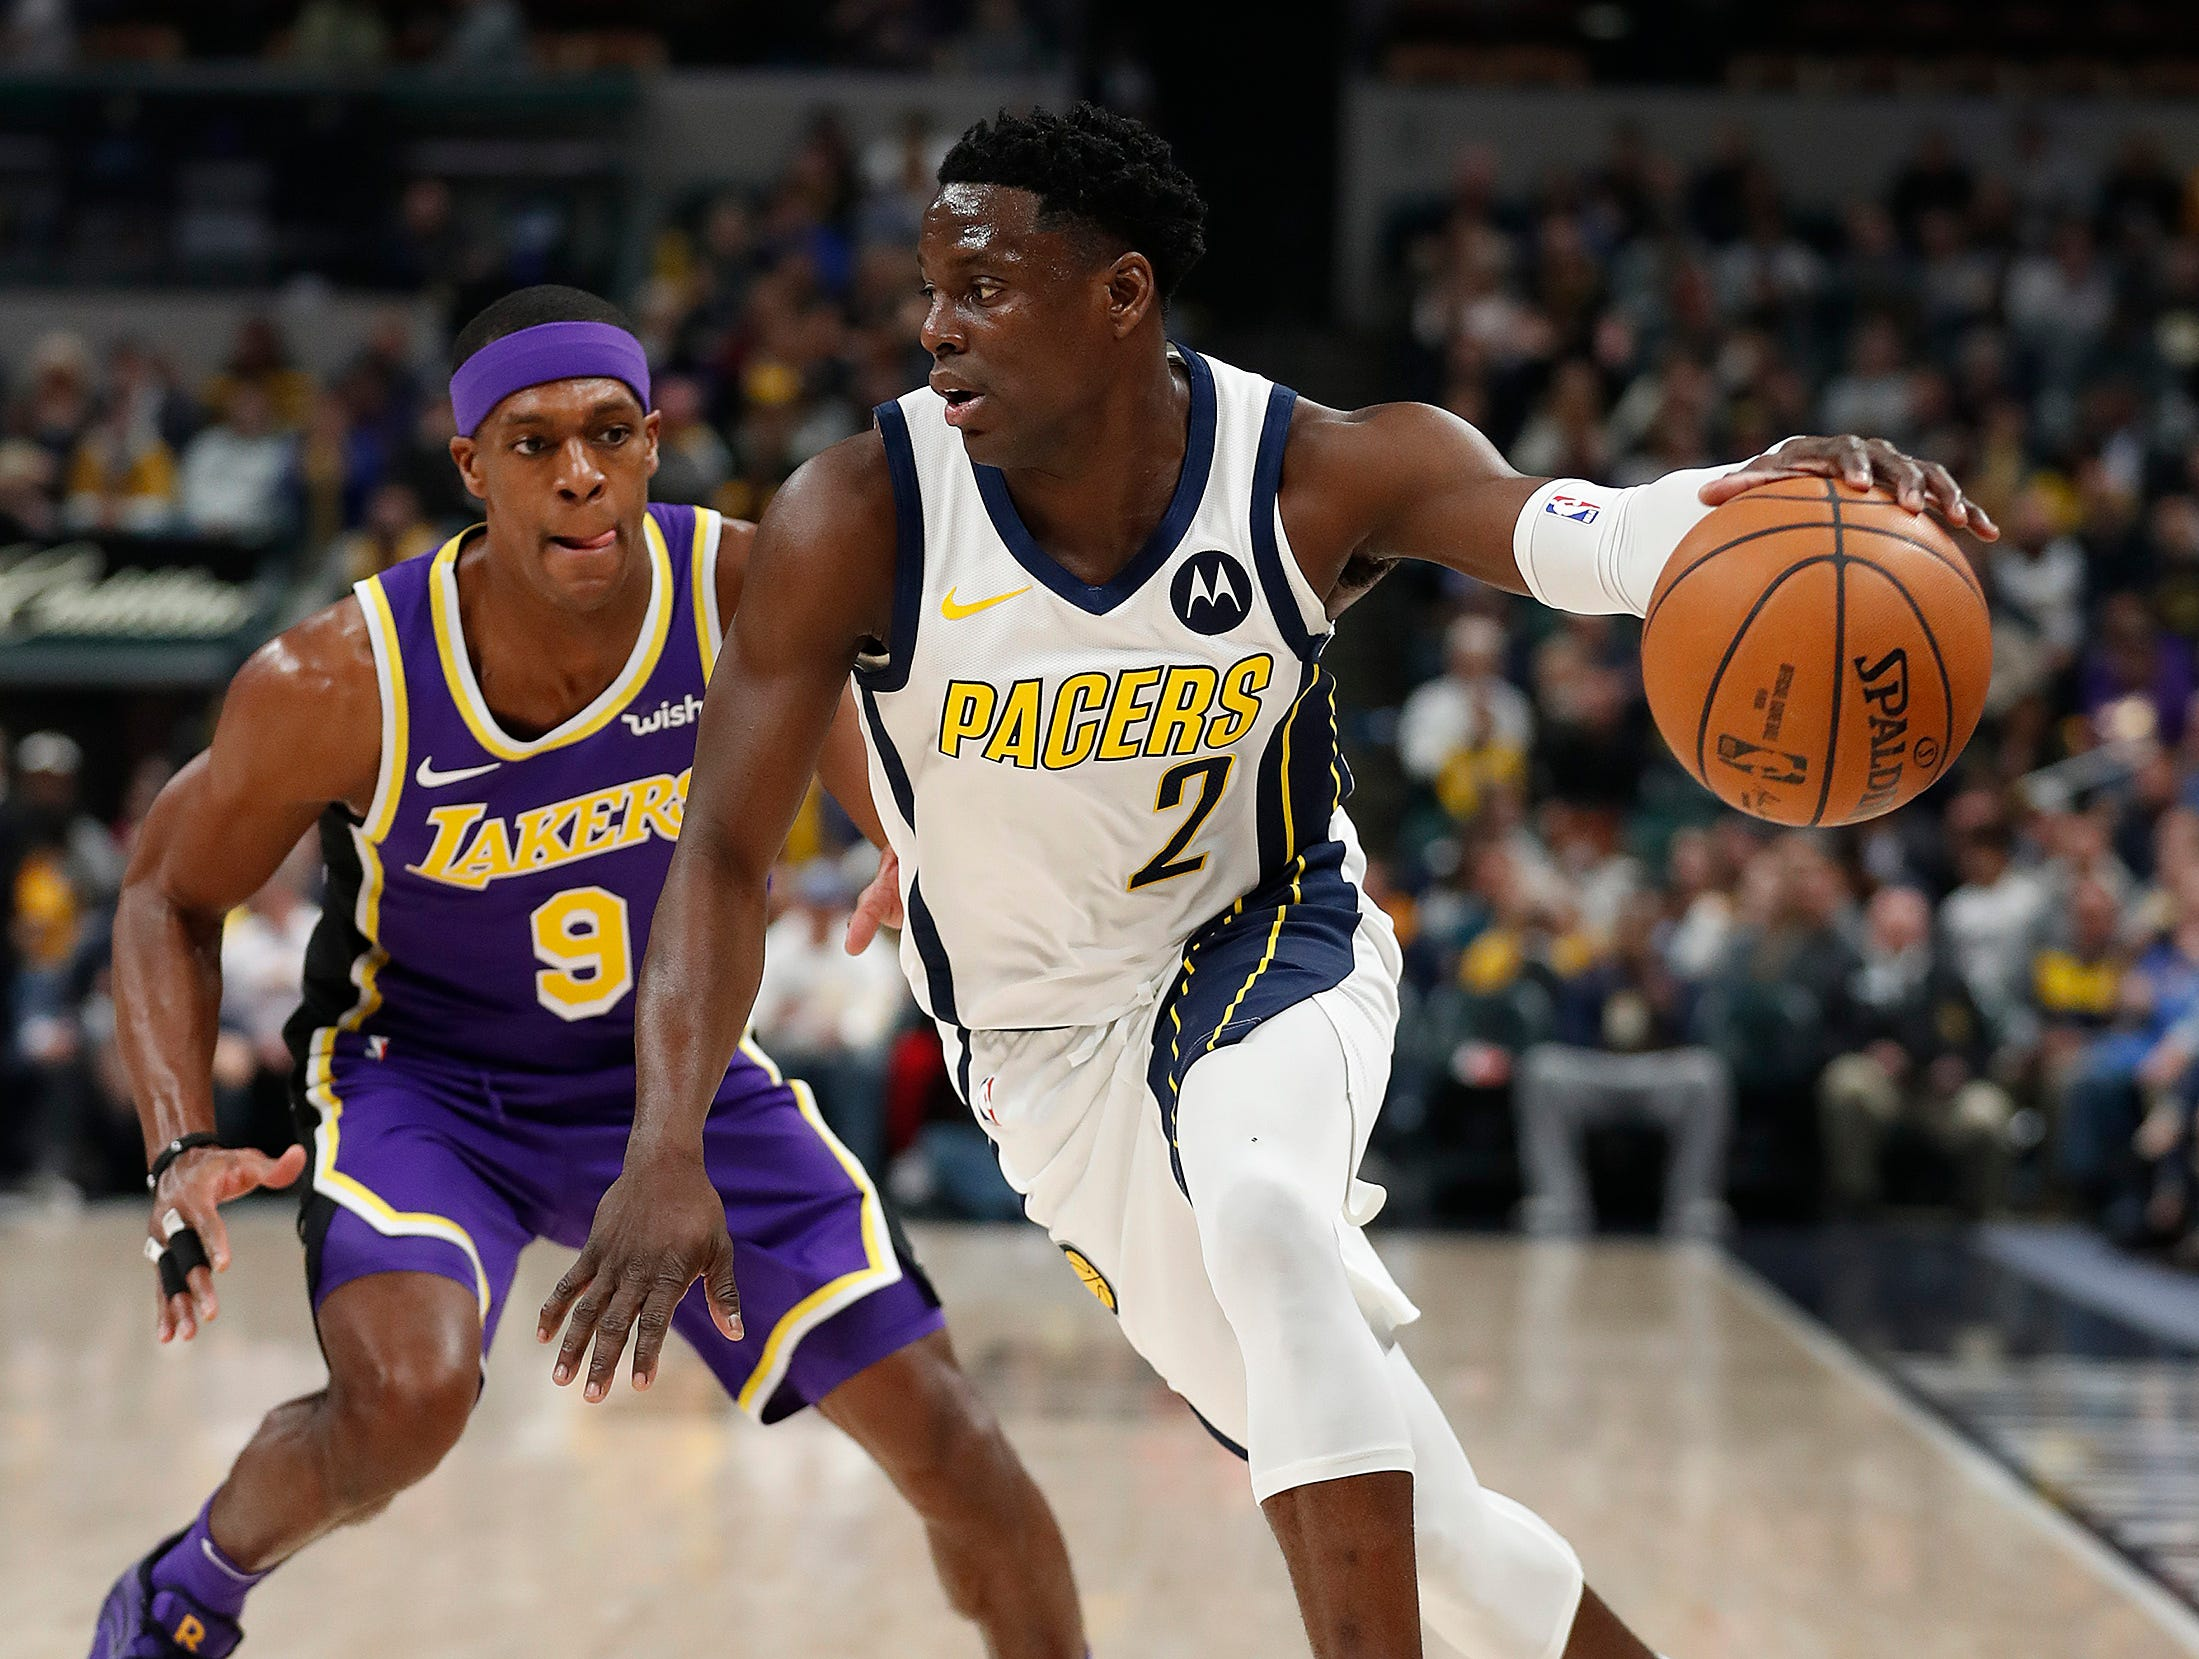 Indiana Pacers guard Darren Collison (2) drives on Los Angeles Lakers guard Rajon Rondo (9) in the first half of their game at Bankers Life Fieldhouse on Tuesday, Feb. 5, 2019.